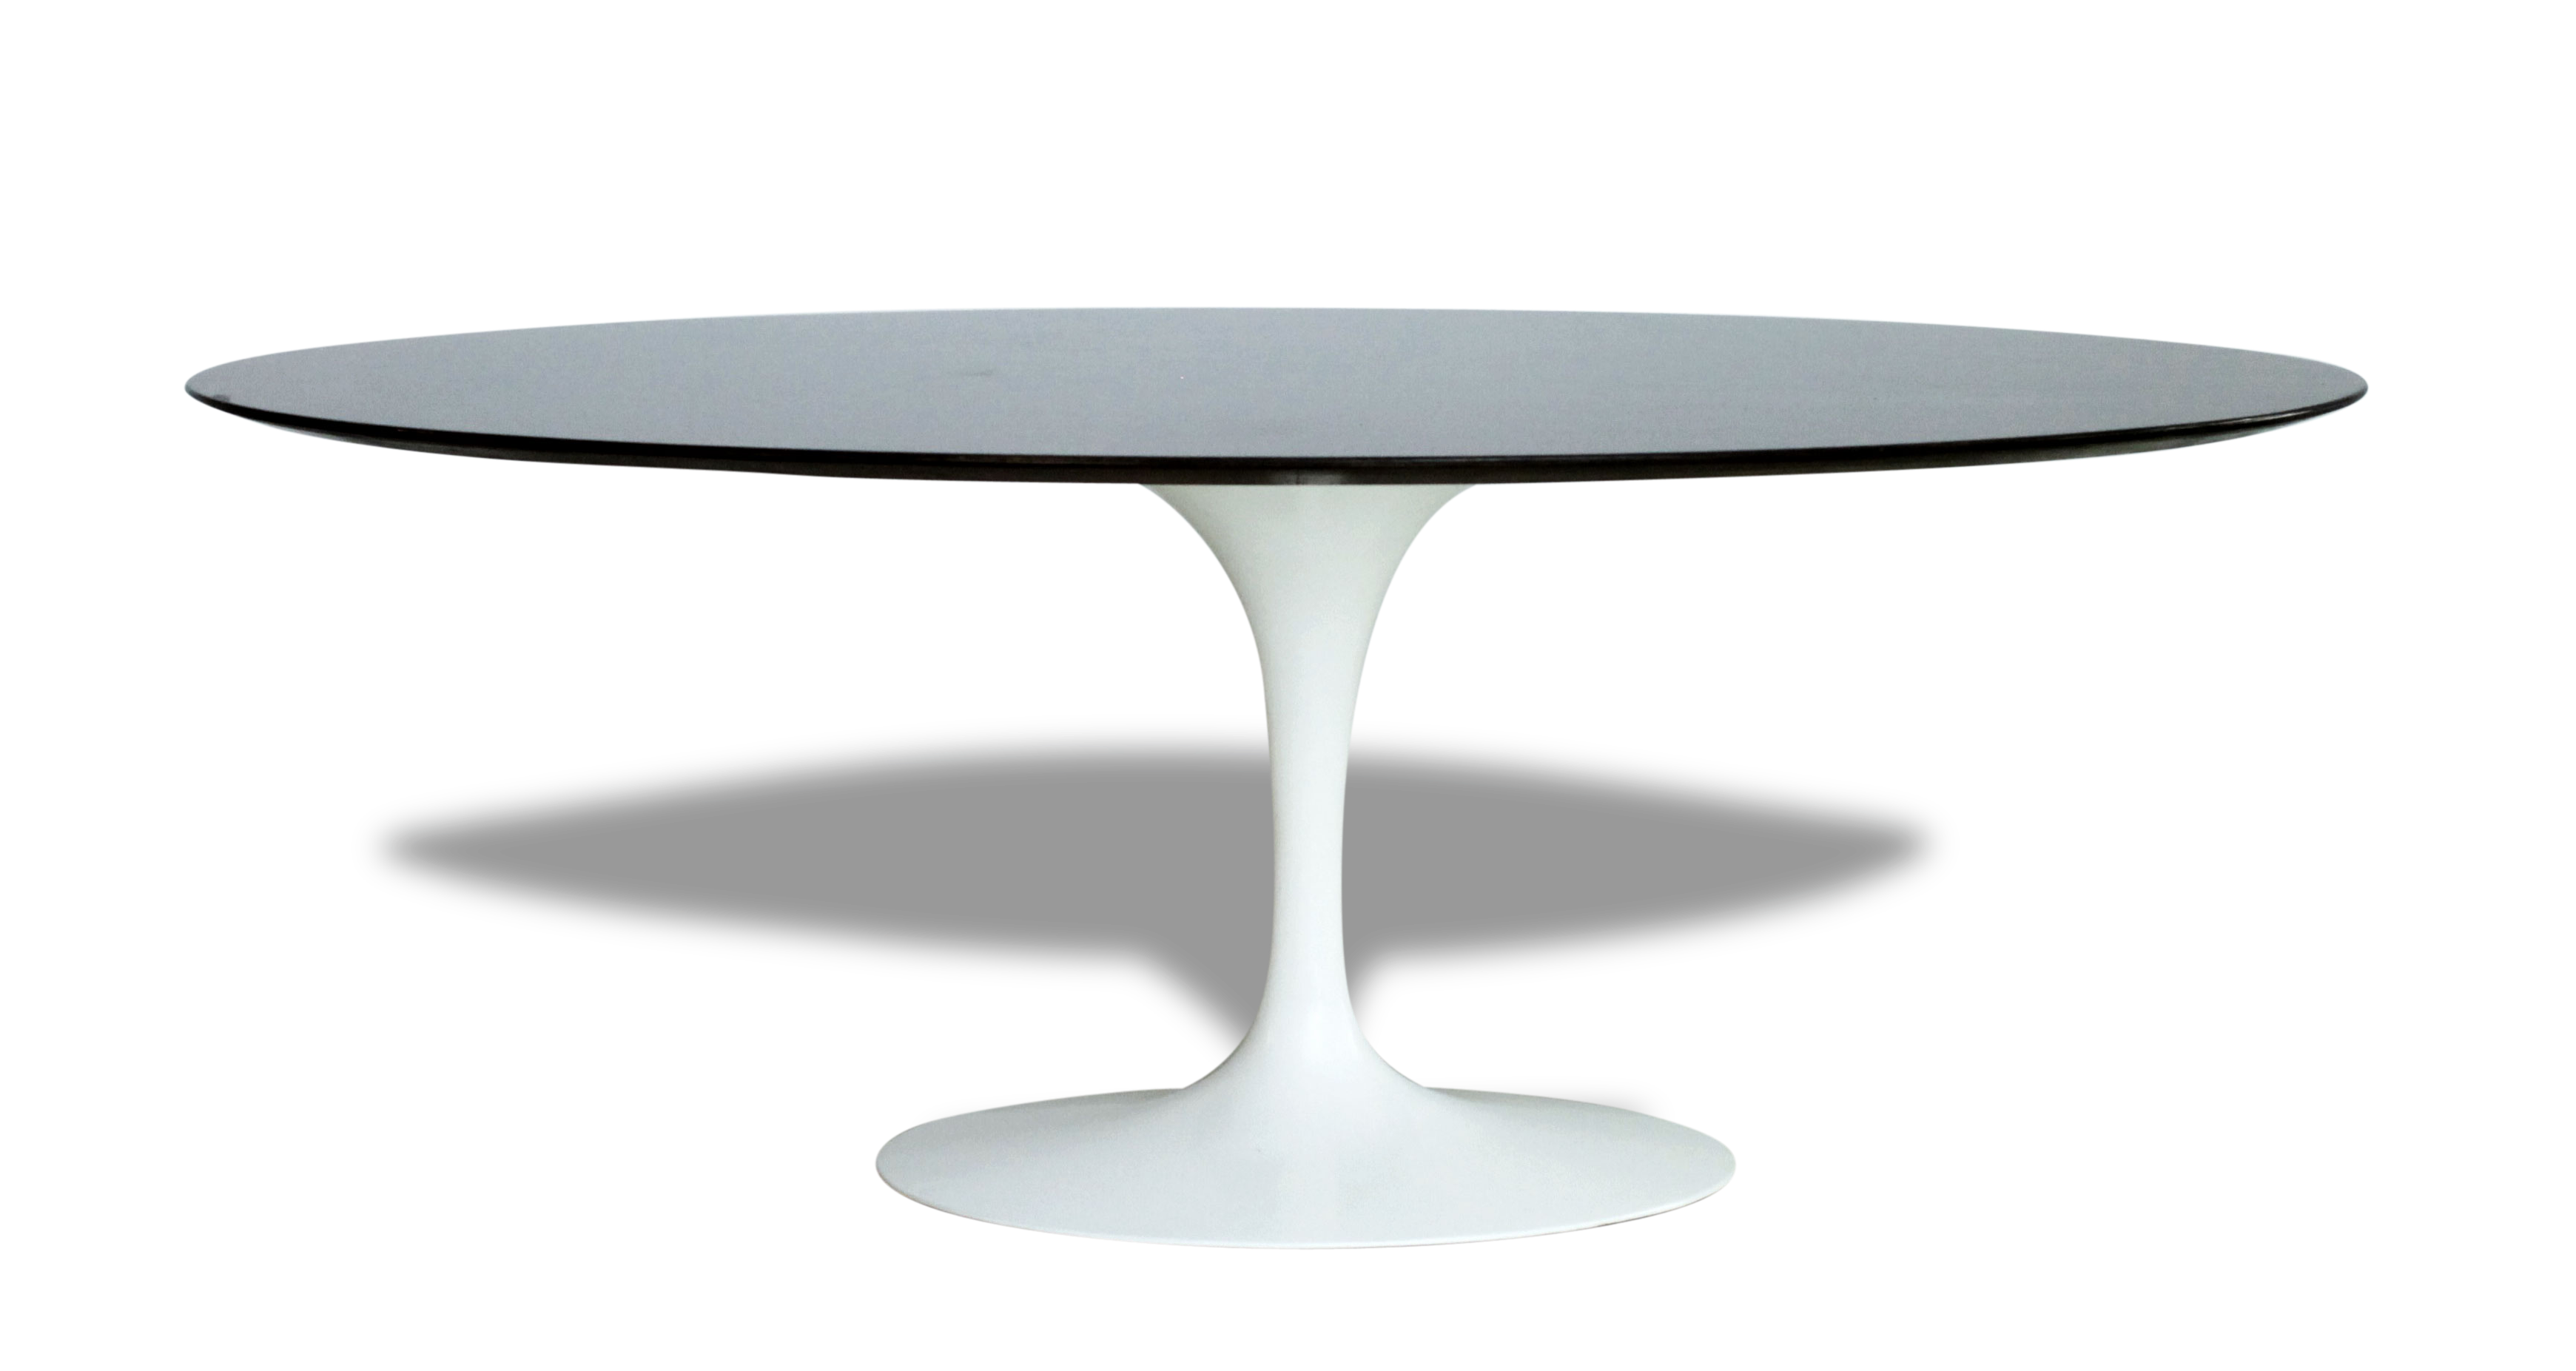 table tulipe ovale knoll table knoll saarinen knoll saarinen tulip dining table cm diameter. Black Bedroom Furniture Sets. Home Design Ideas